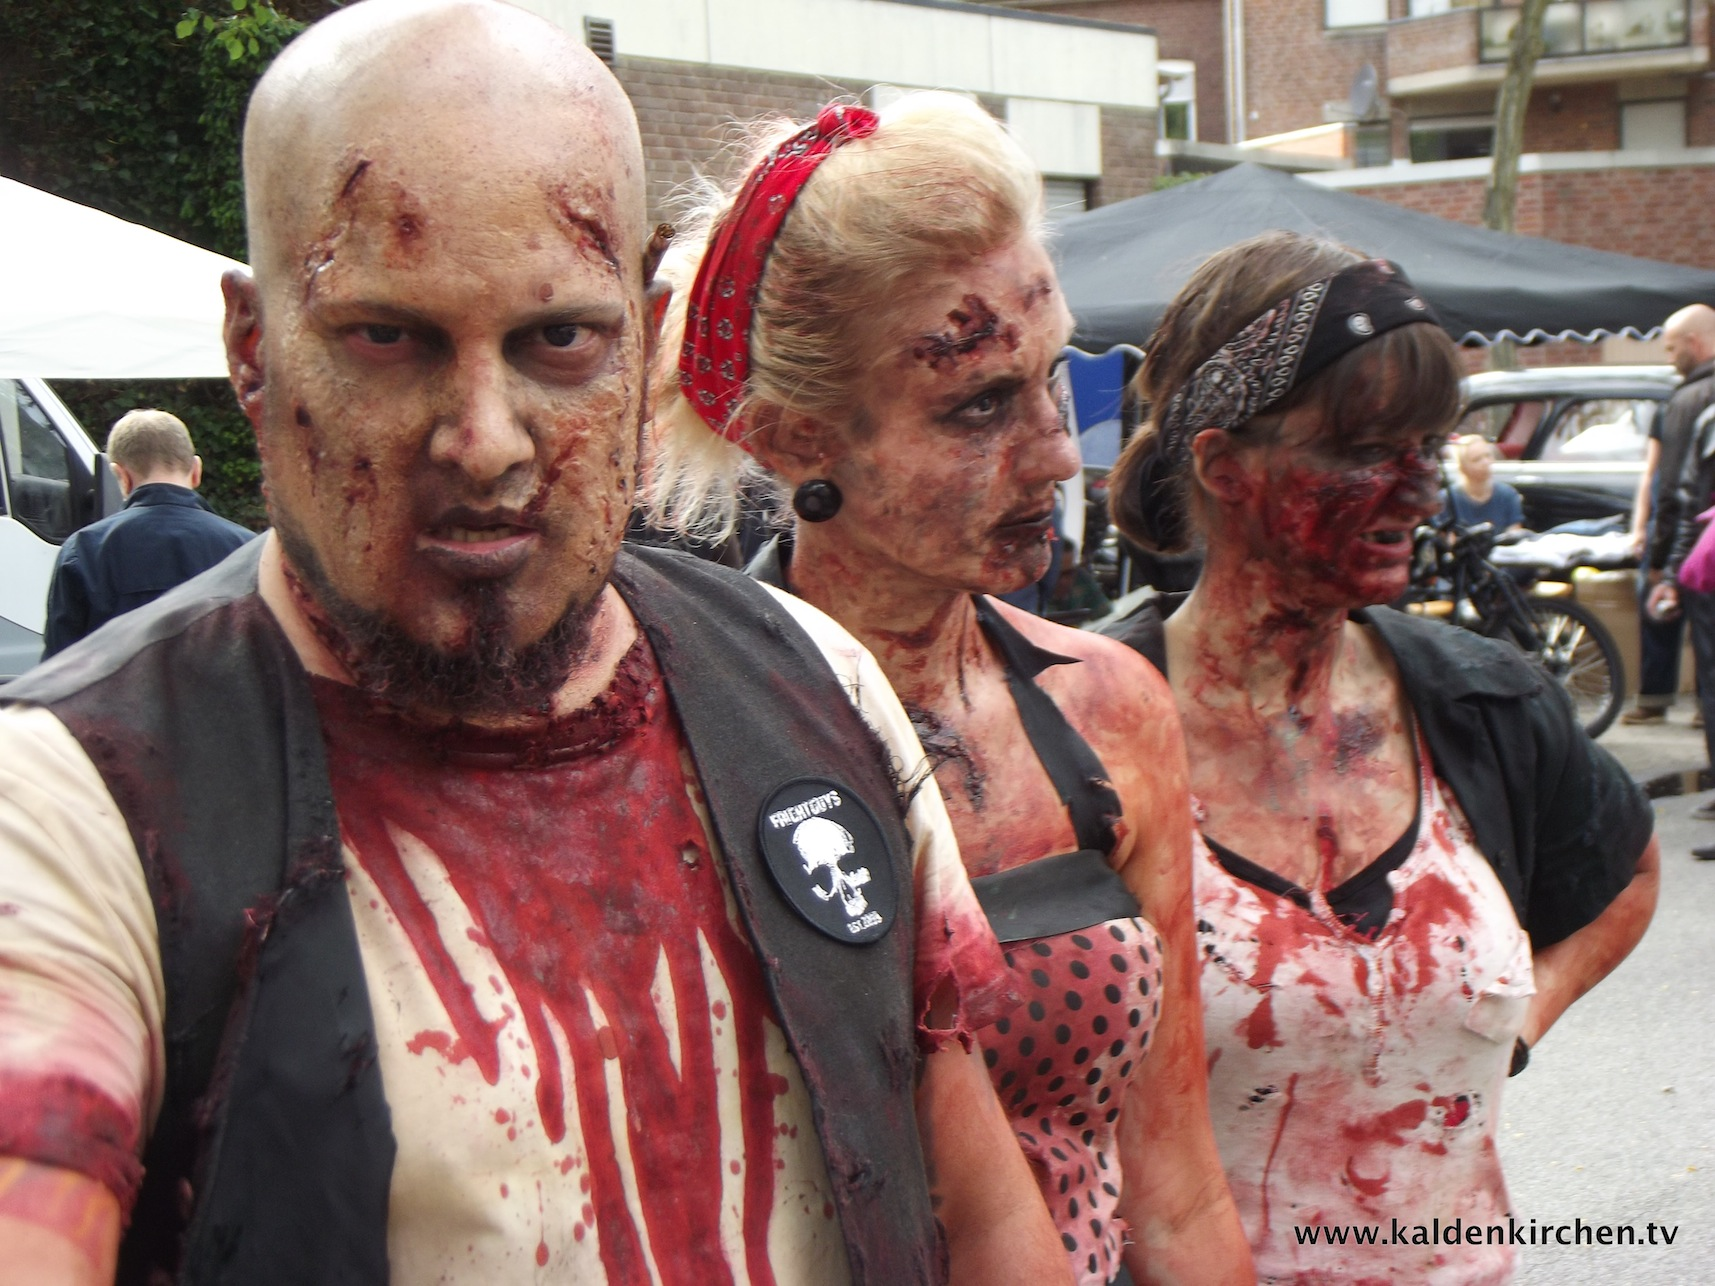 ZOMBIES in COLDCHURCH